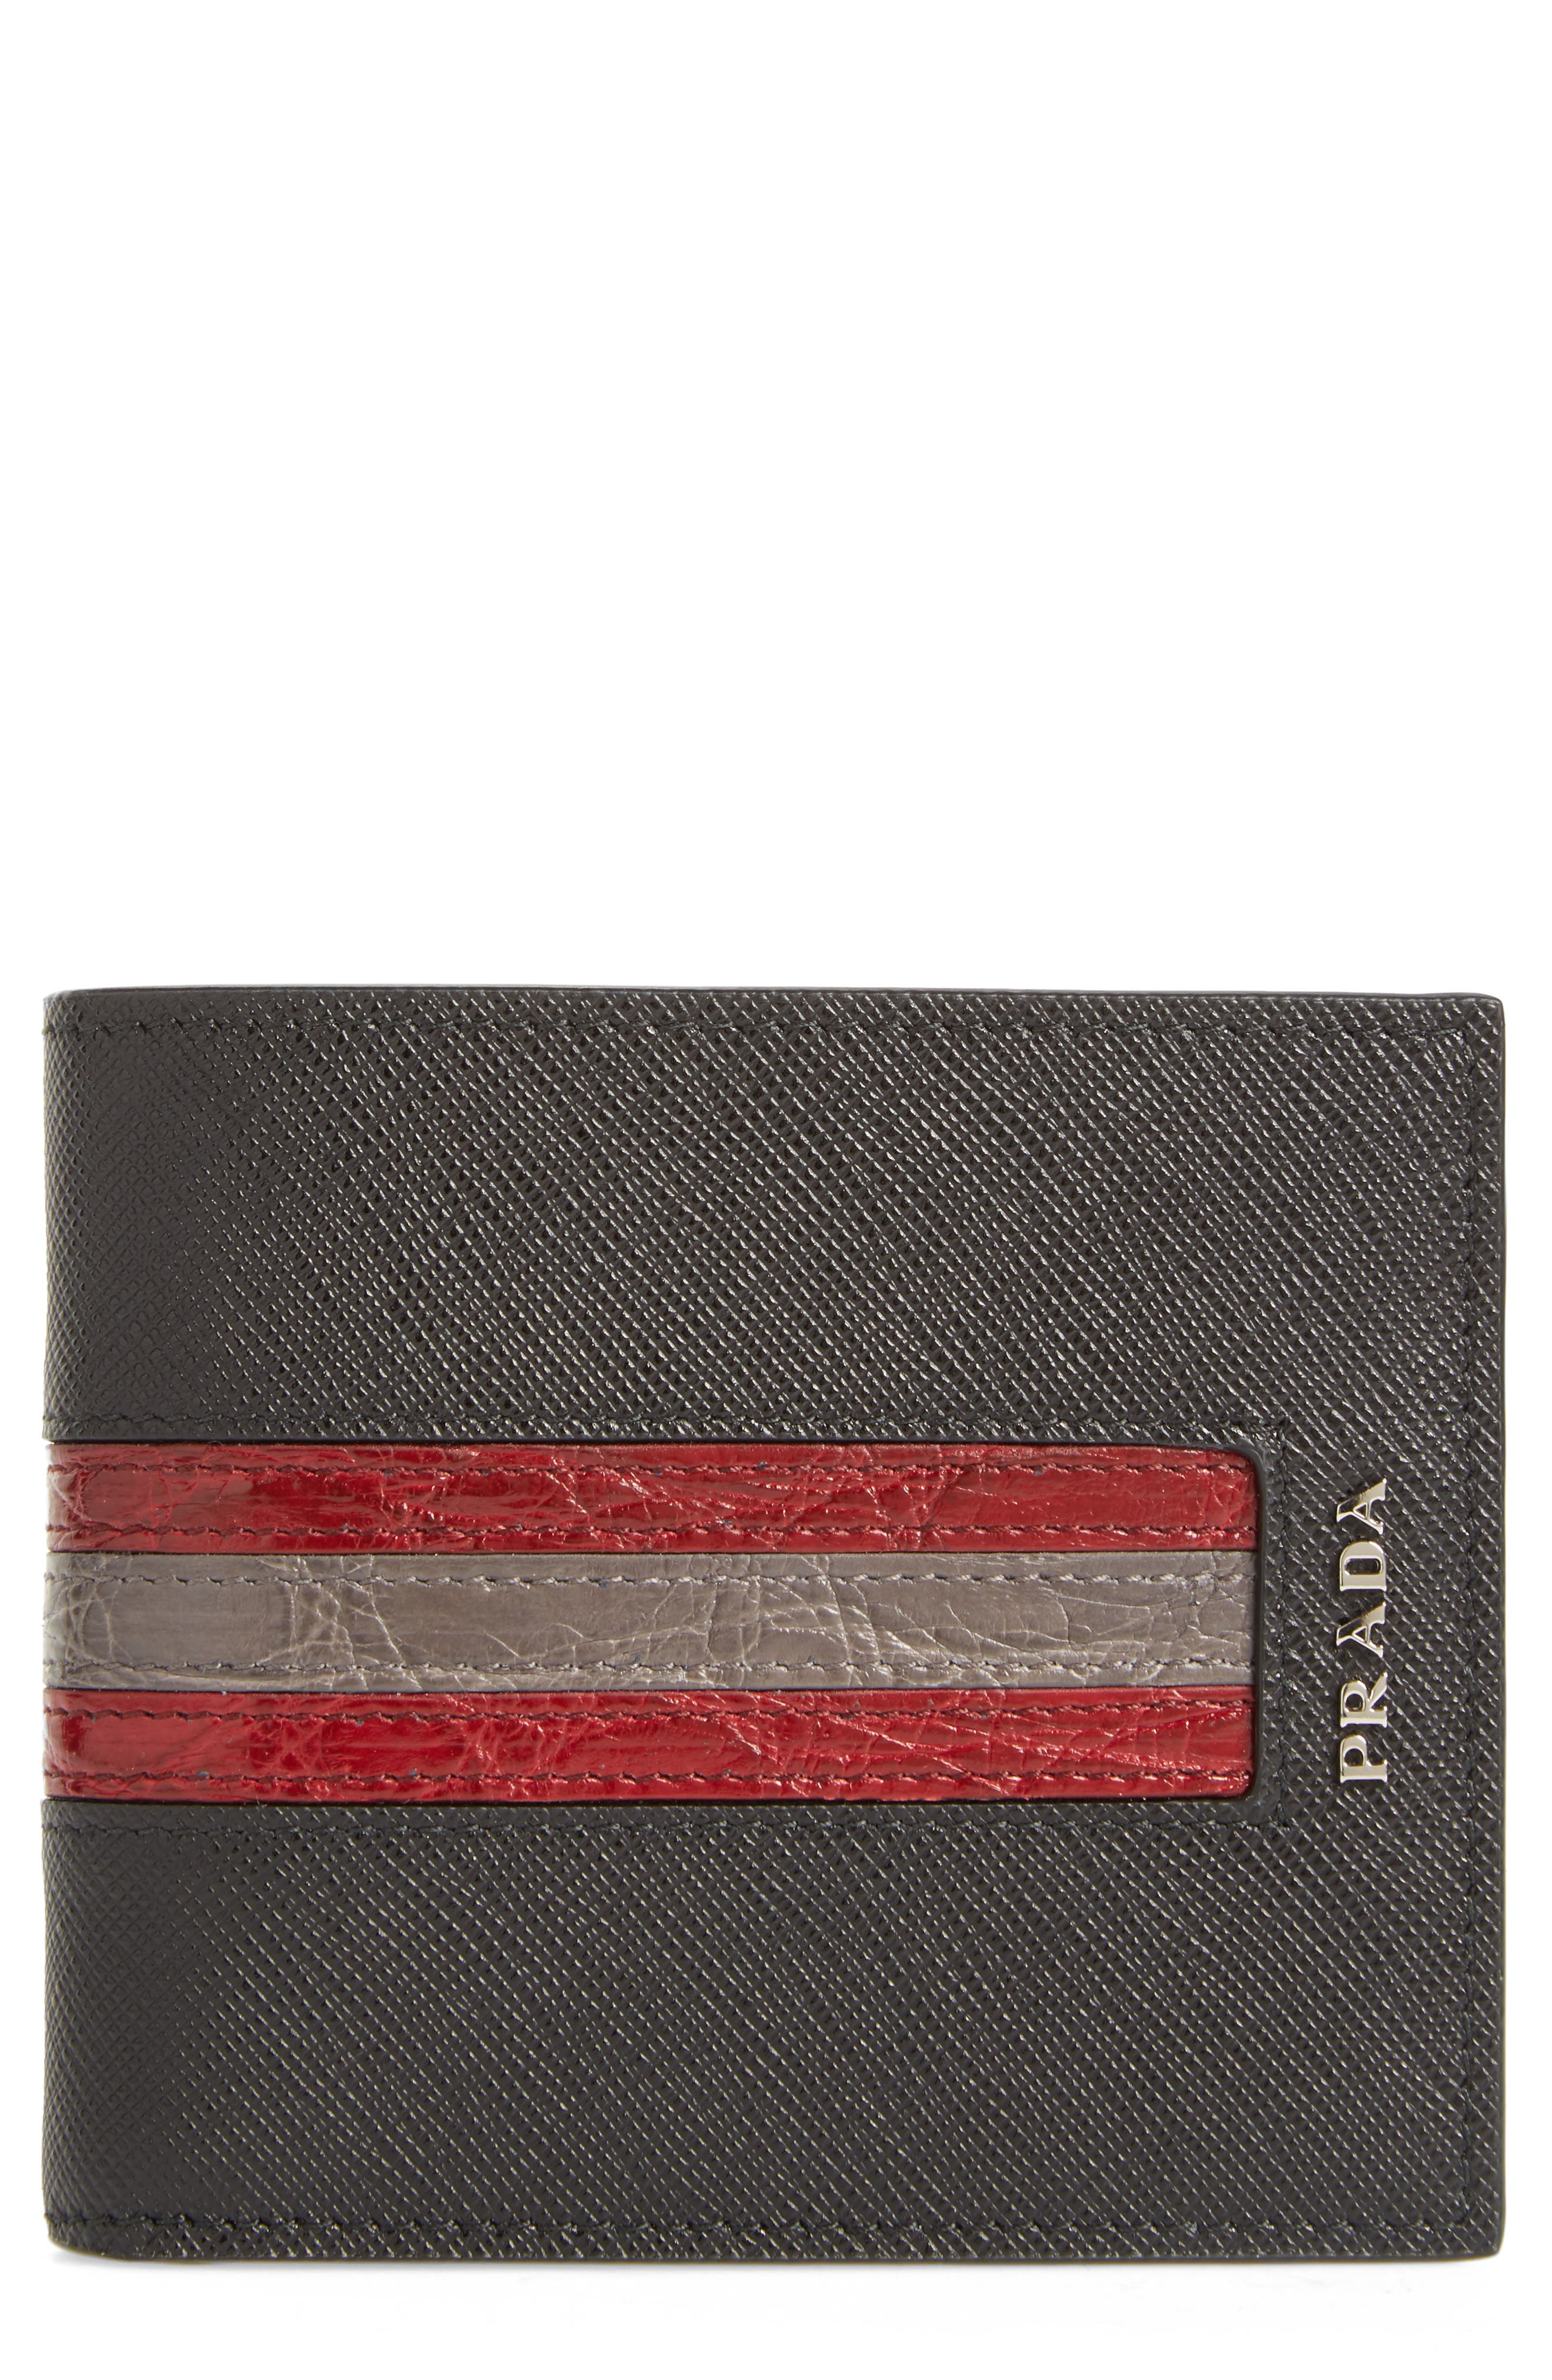 Saffiano and Crocodile Leather Wallet,                         Main,                         color, 004